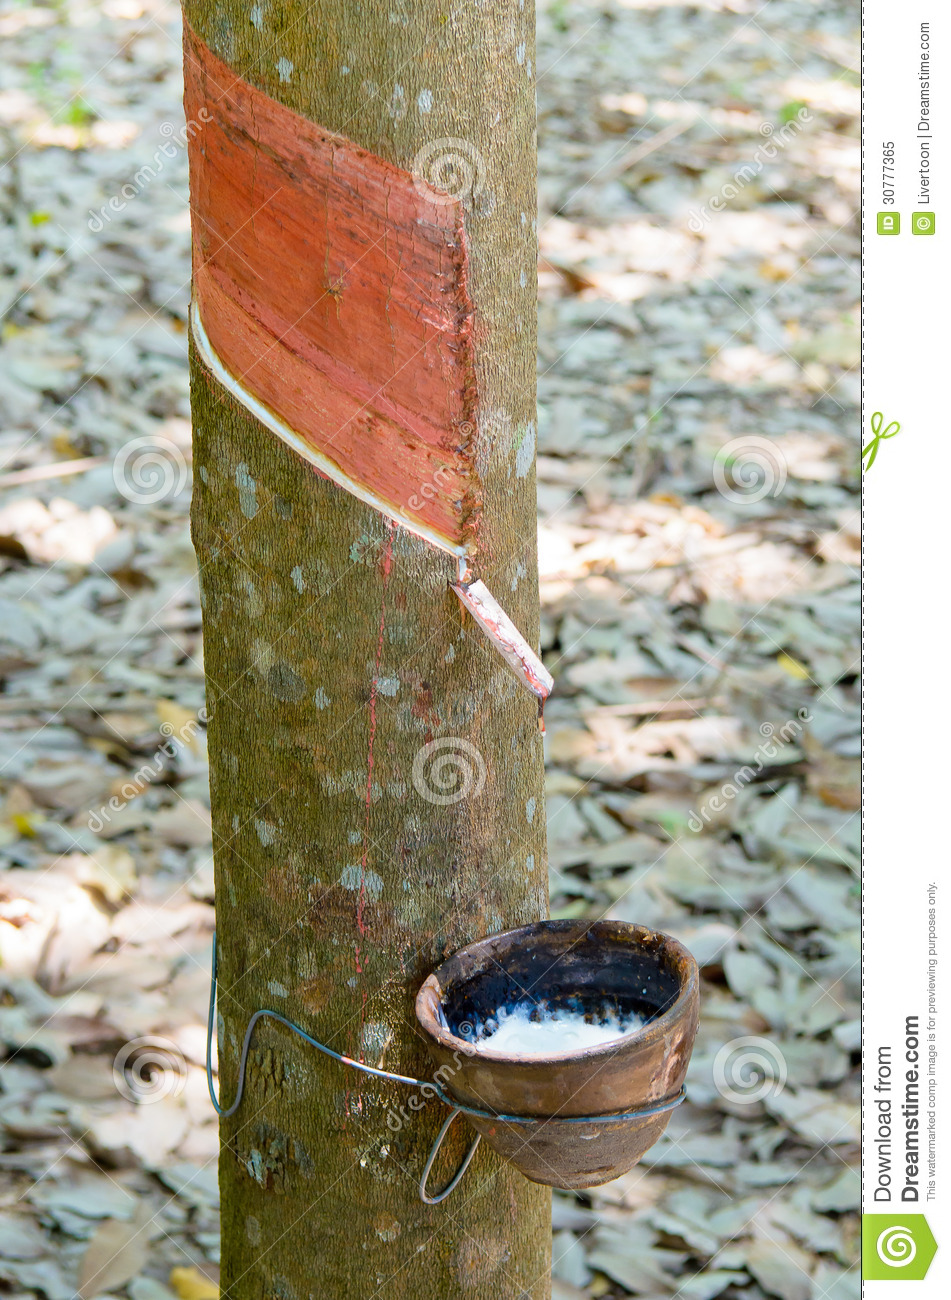 Rubber Tapping A Rubber Tree Stock Image Image Of Agriculture